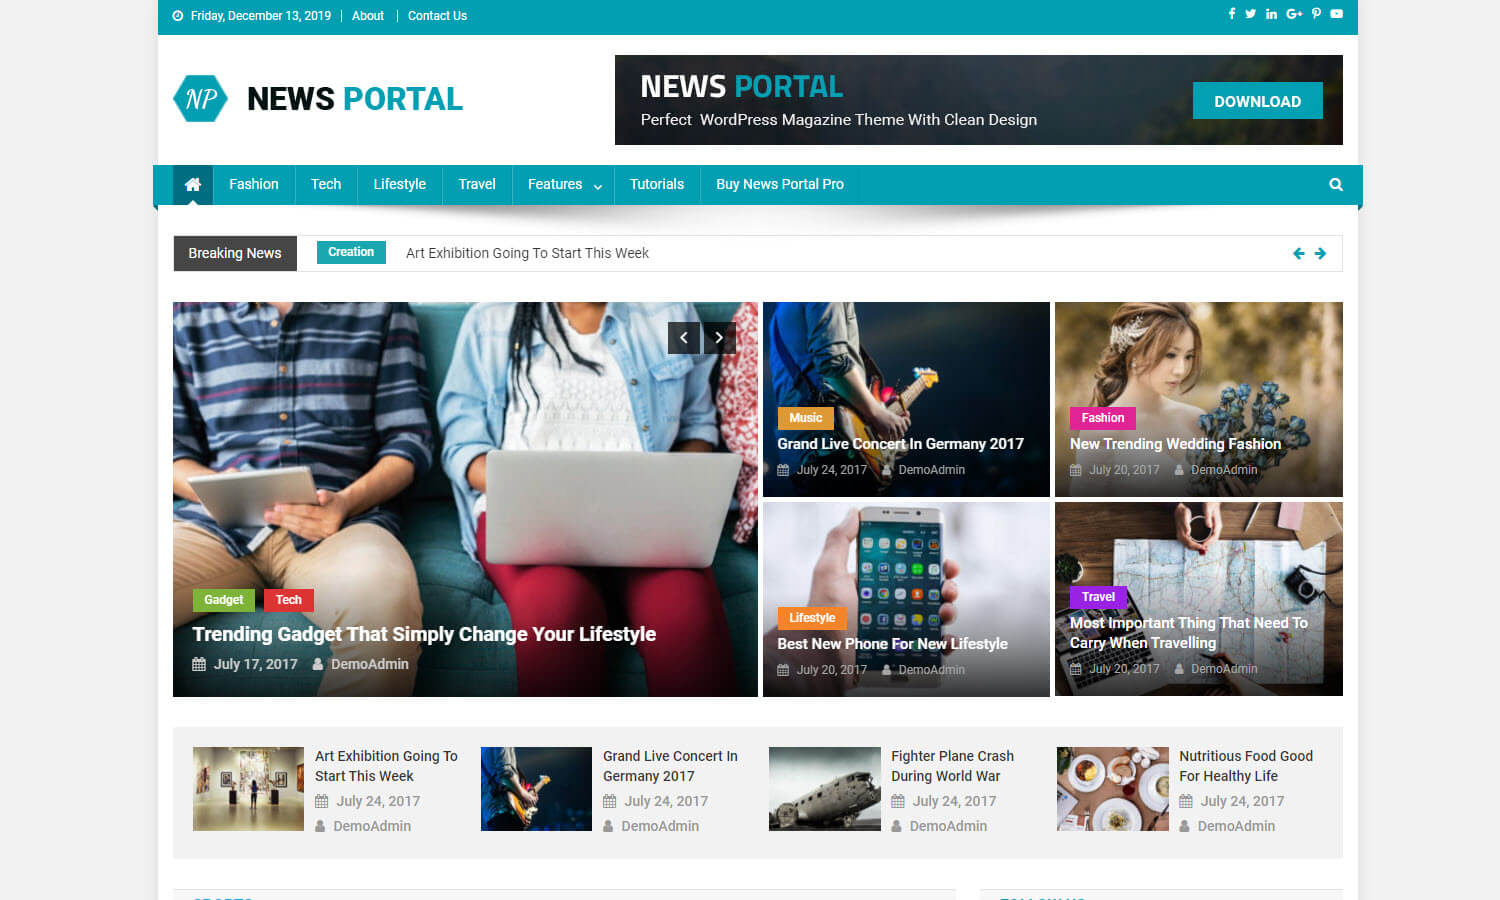 News Portal captura de pantalla